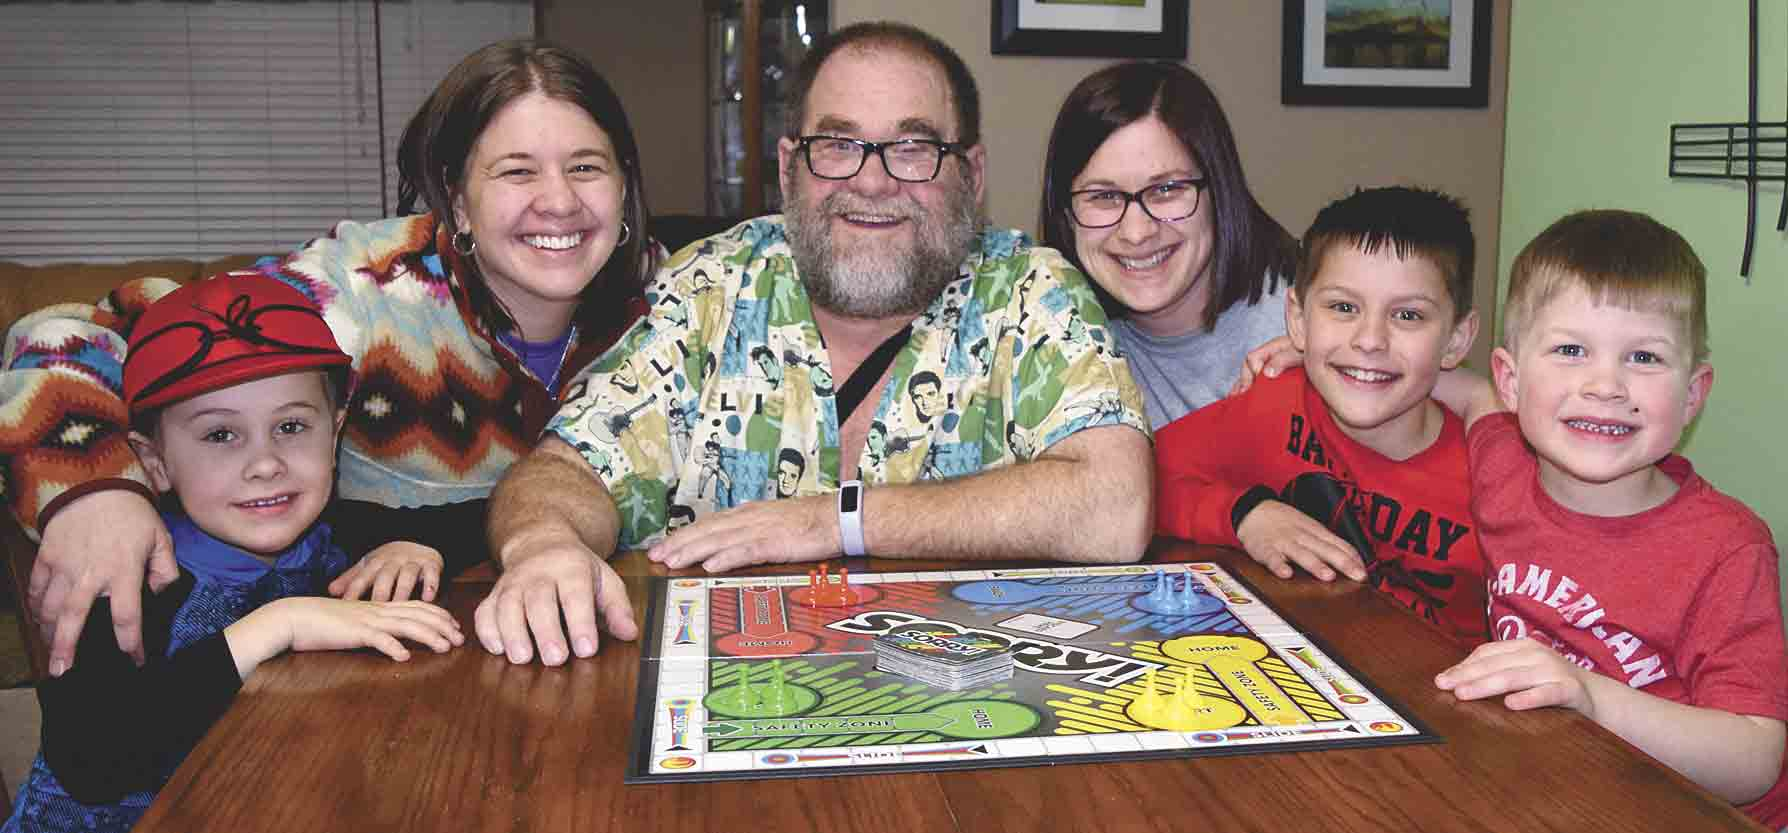 Surrounded by his family, Steve Friederich (center) celebrates his 62nd birthday on Saturday, Feb. 10, shortly after having single-bypass surgery at Gundersen Health System in LaCrosse, Wis. Enjoying a board game on his birthday were (l-r) grandson Clayton Loftsgard, daughter Steph...